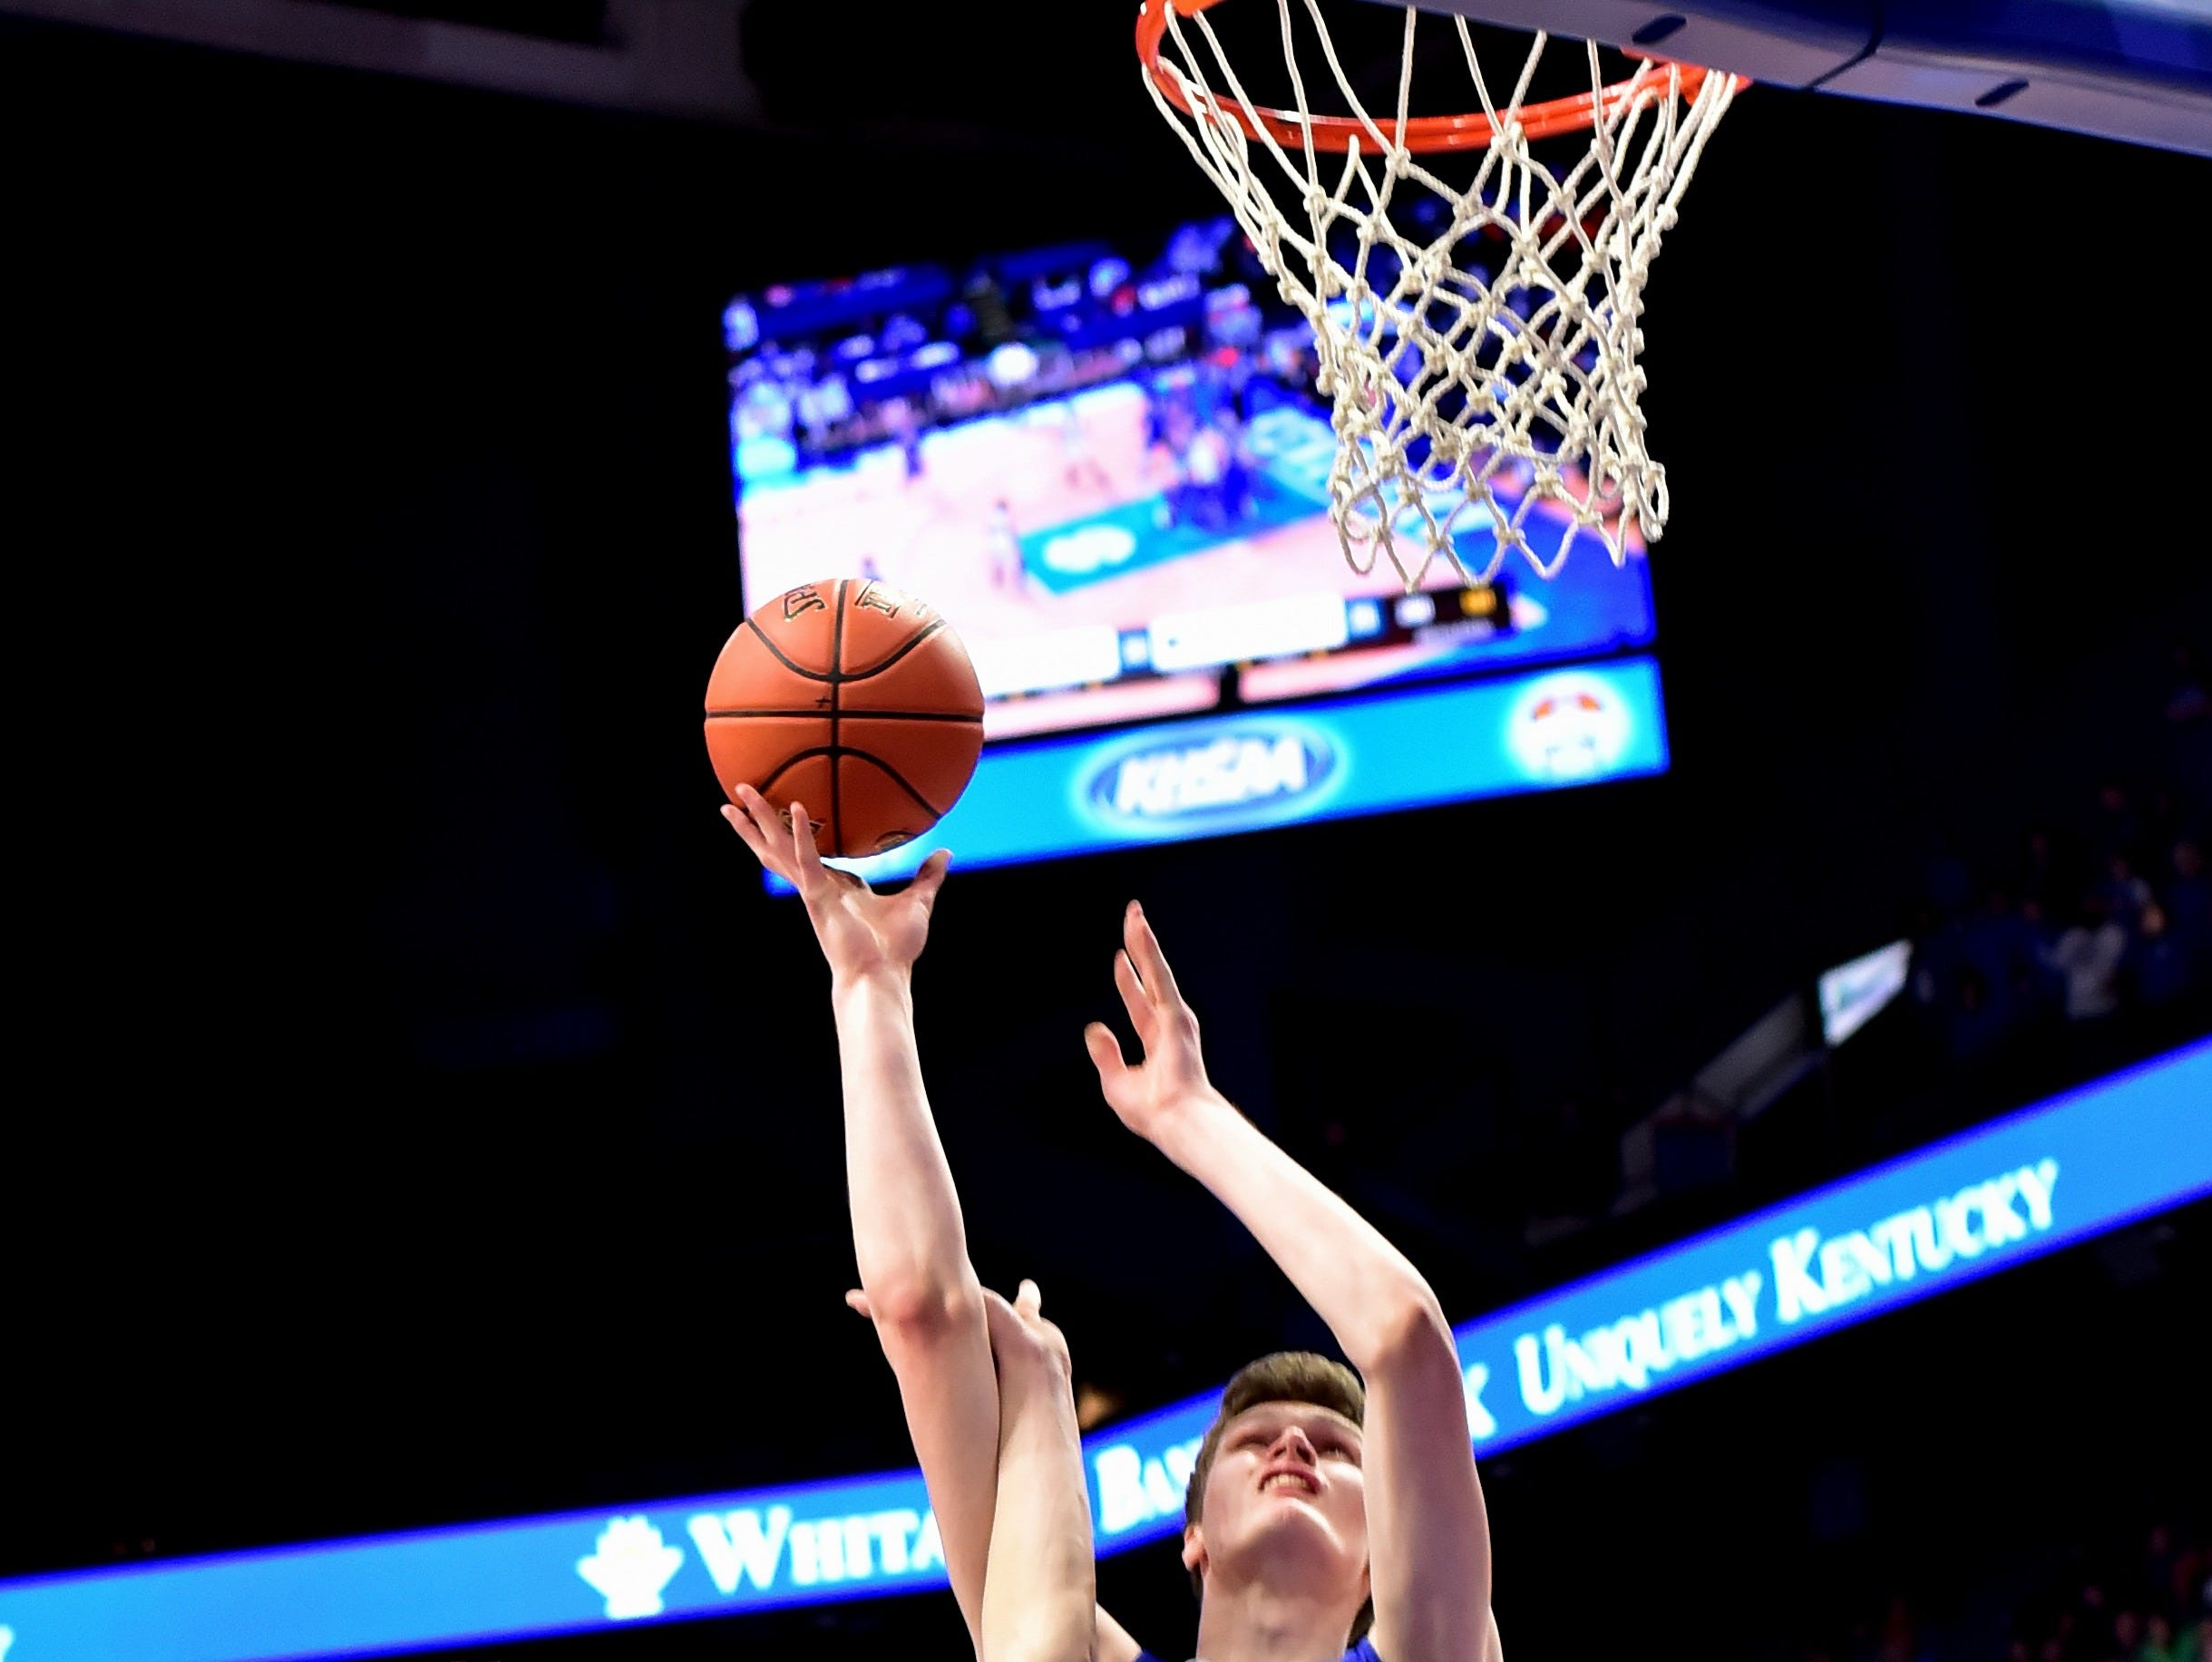 Ethan Brook (1) collects a basket and trip to the free throw line for Walton Verona at the KHSAA Sweet 16 Tournament at Rupp Arena in Lexington, KY, March 6, 2019